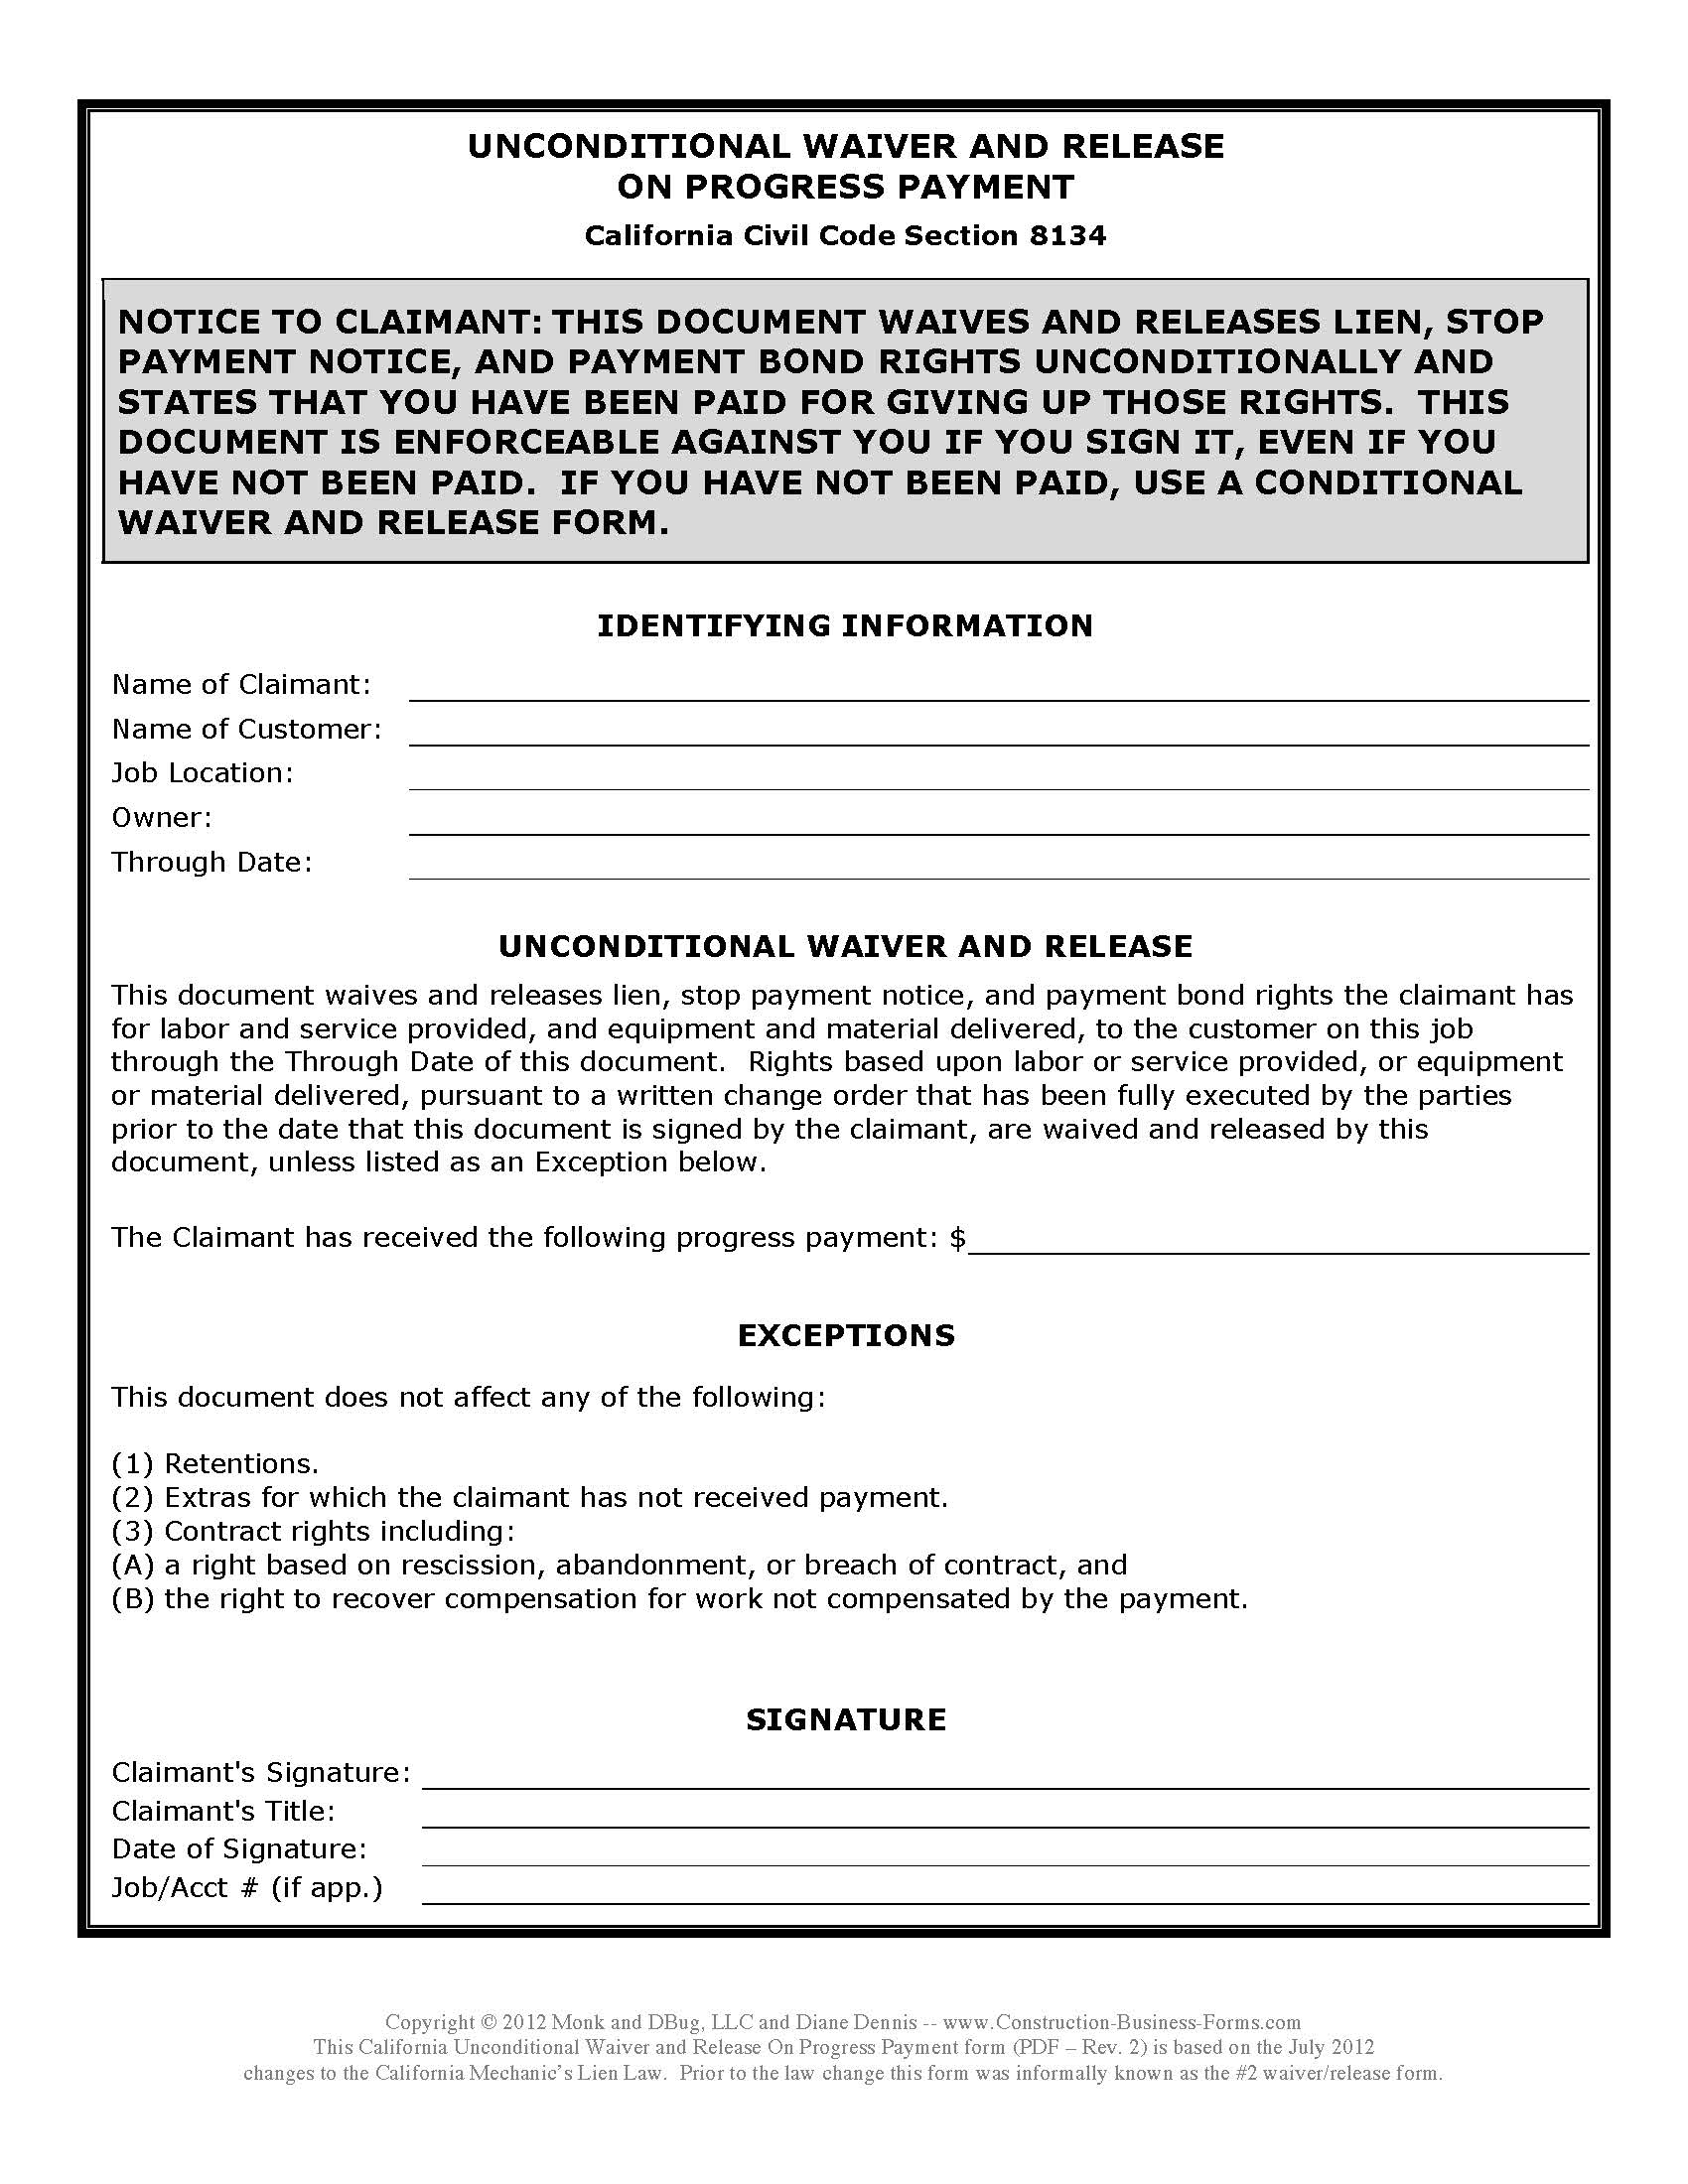 AIA Forms G702 G703 Application Certificate And Continuation